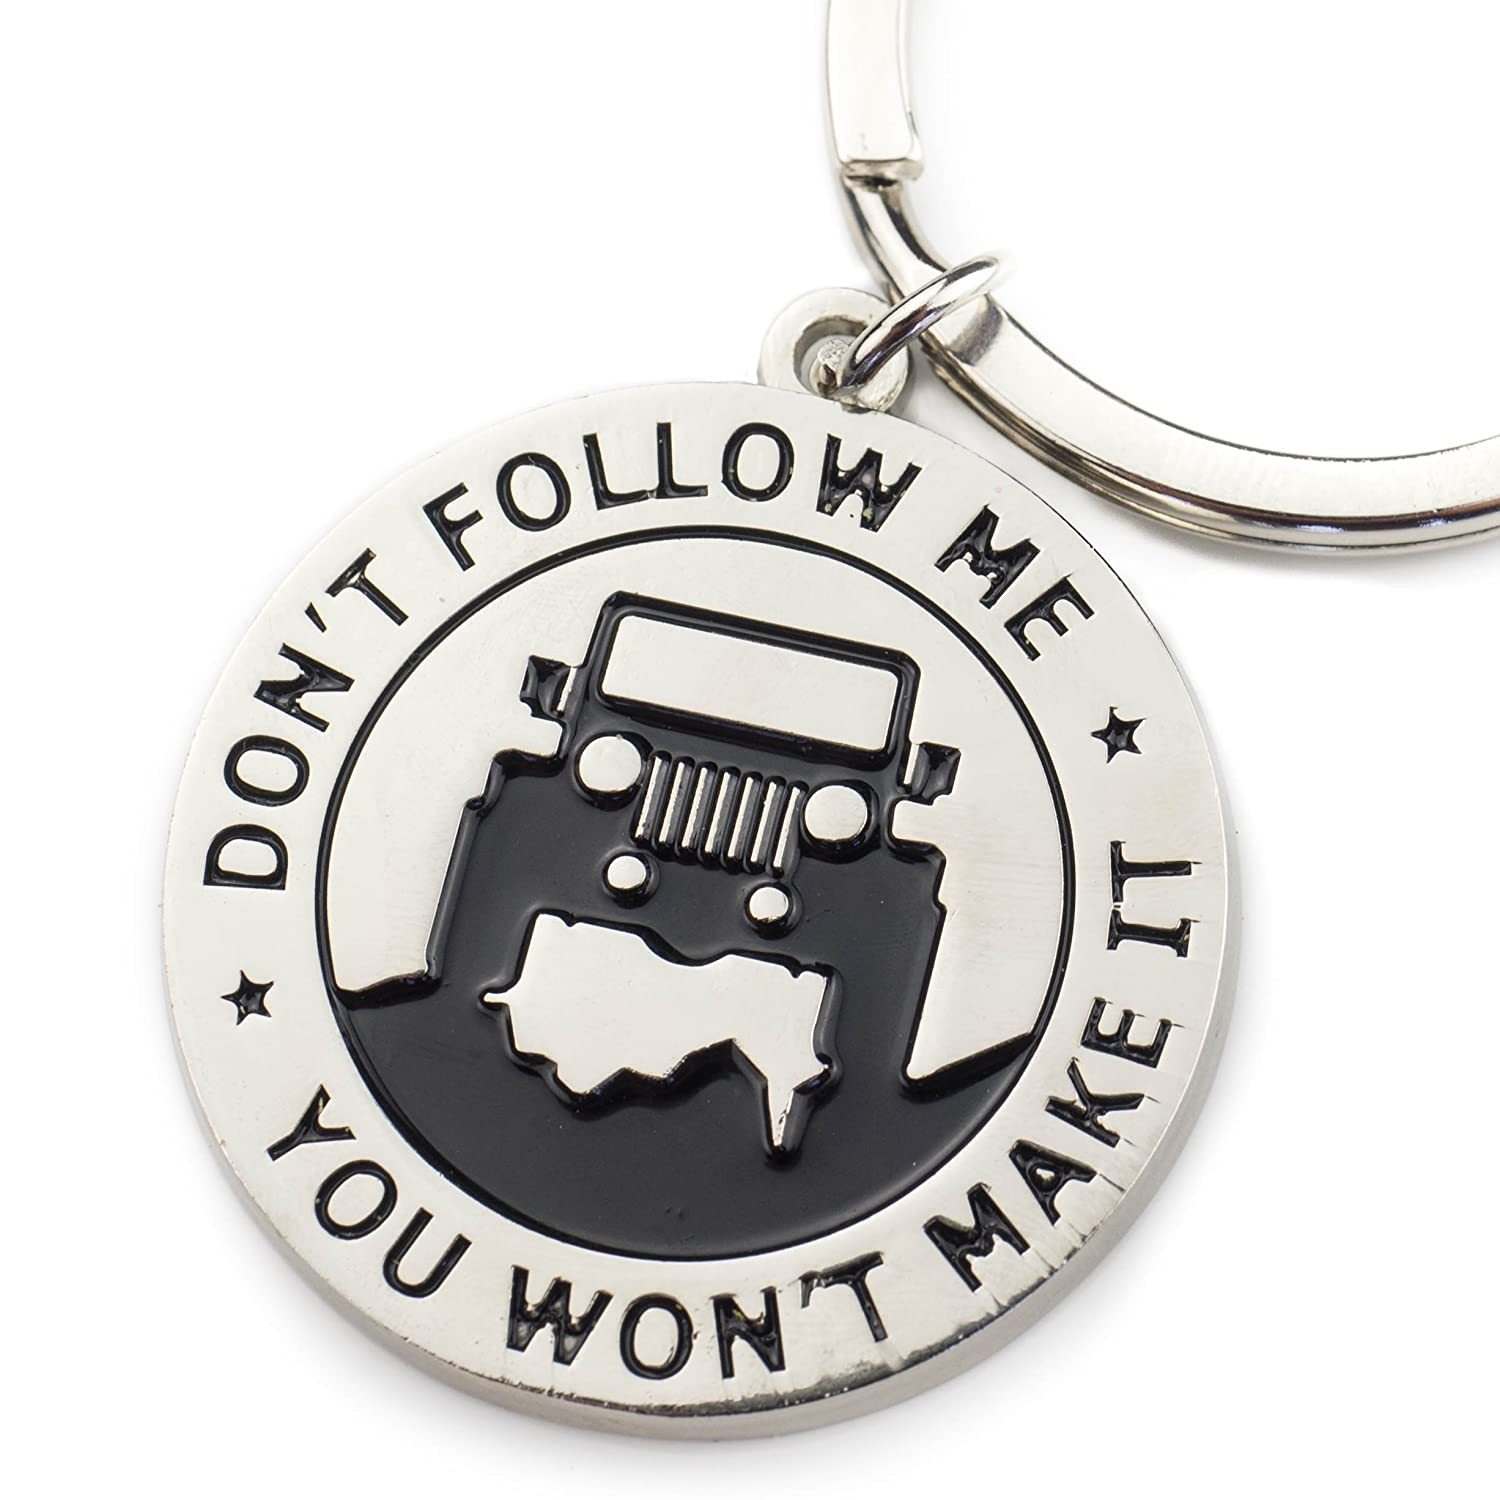 Wrenches & Bones Key Chain for Jeep Enthusiasts - Don